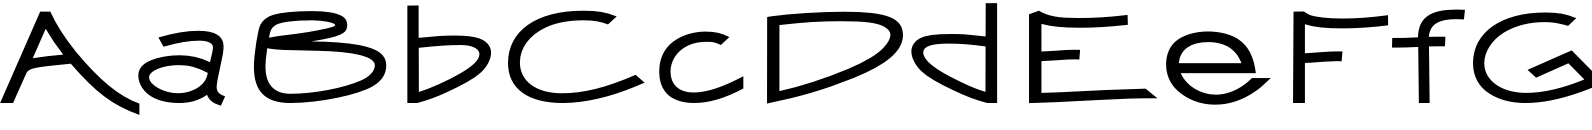 Smooth Buggaloo Stretched Bold